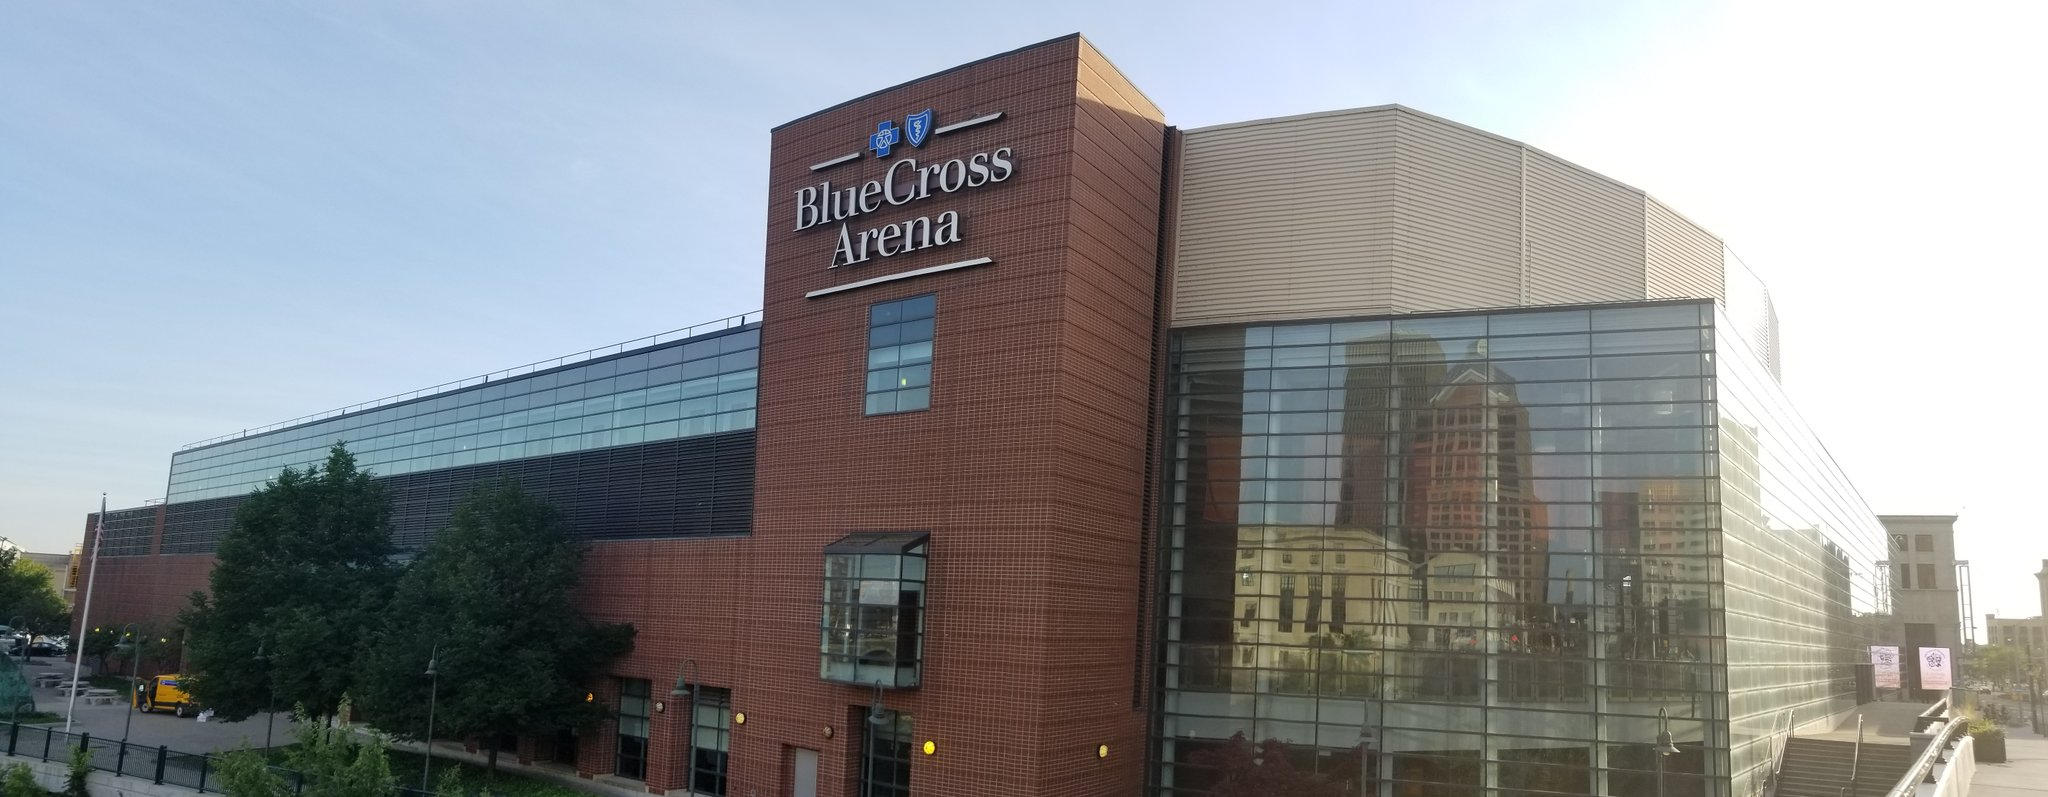 New Blue Cross Arena Building Policies